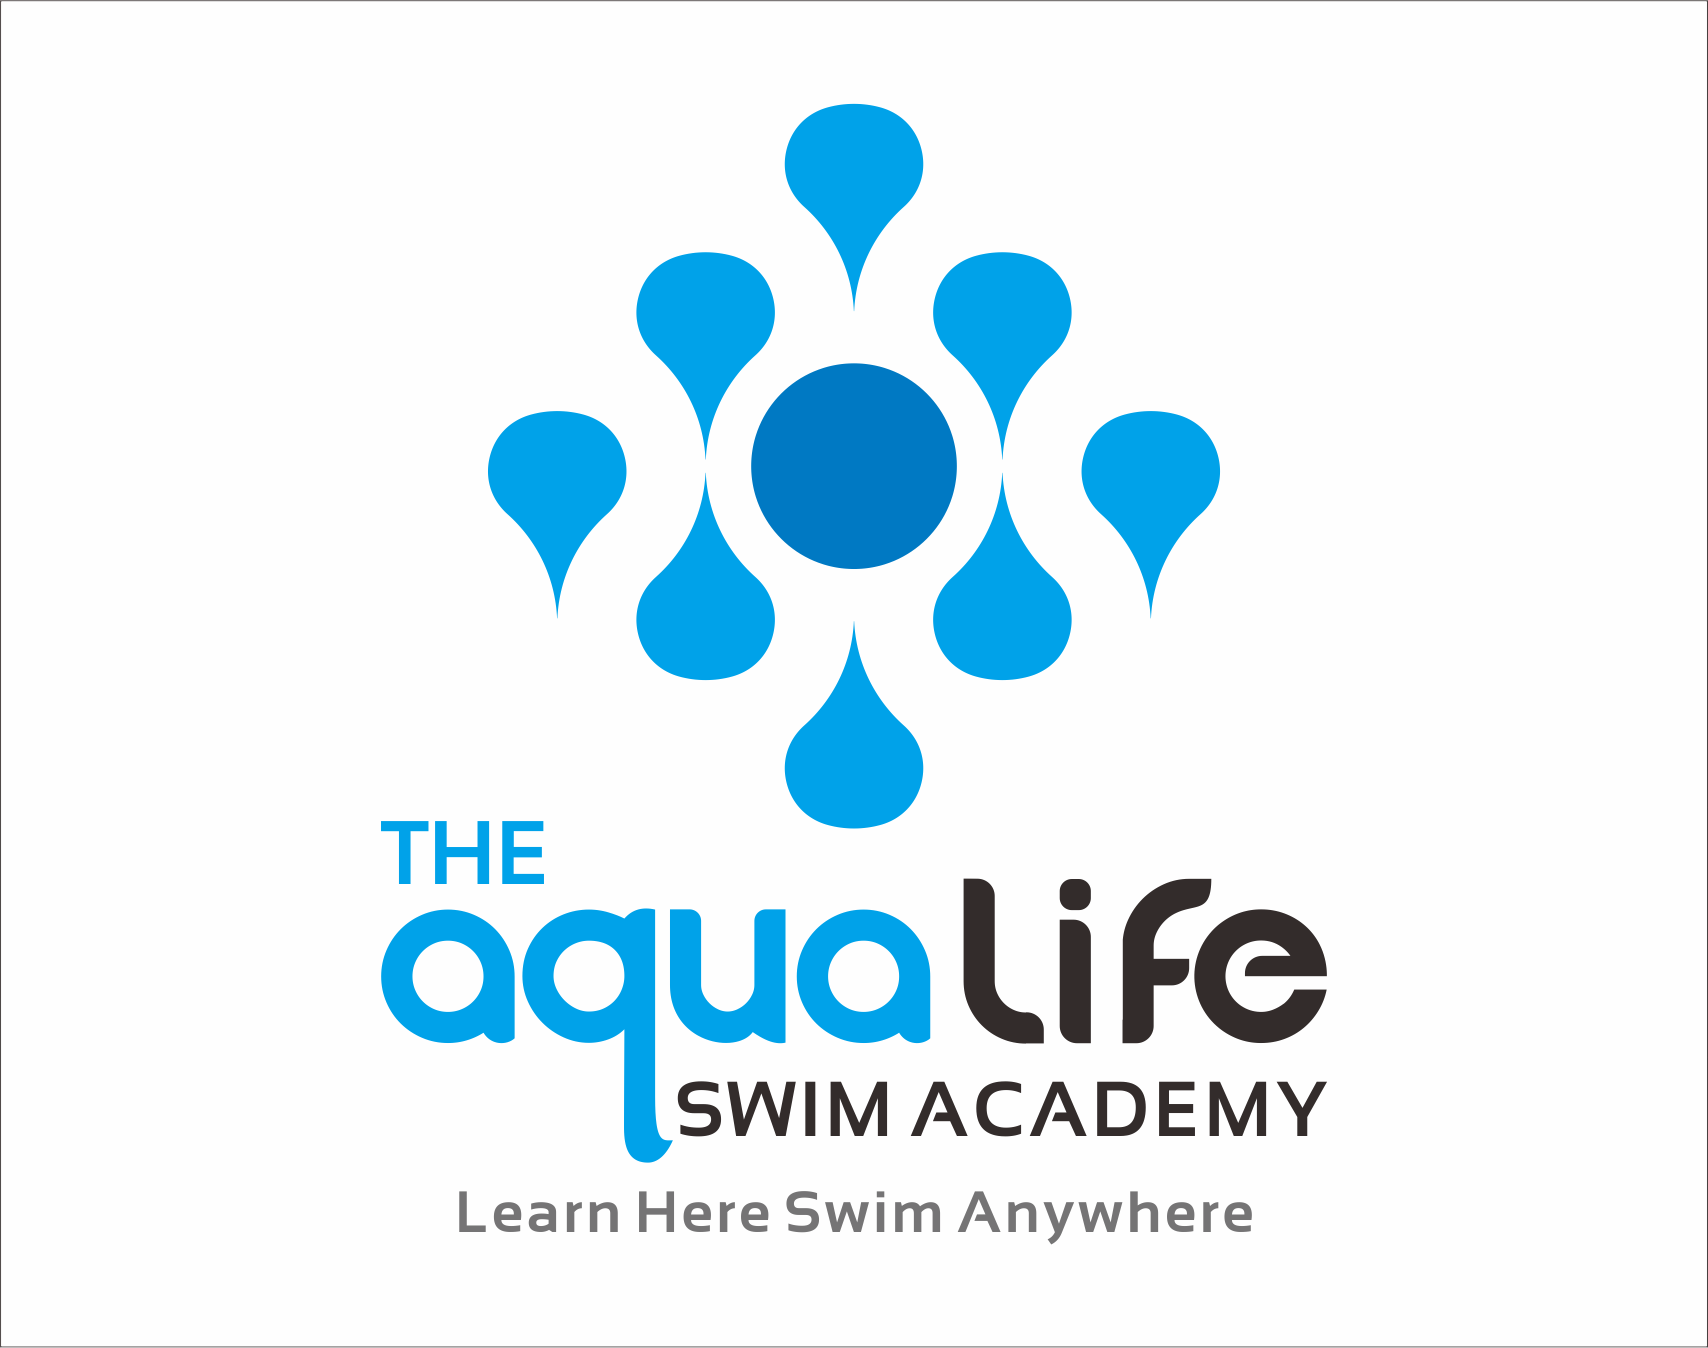 Logo Design by Armada Jamaluddin - Entry No. 217 in the Logo Design Contest Artistic Logo Design Wanted for The Aqua Life Swim Academy.